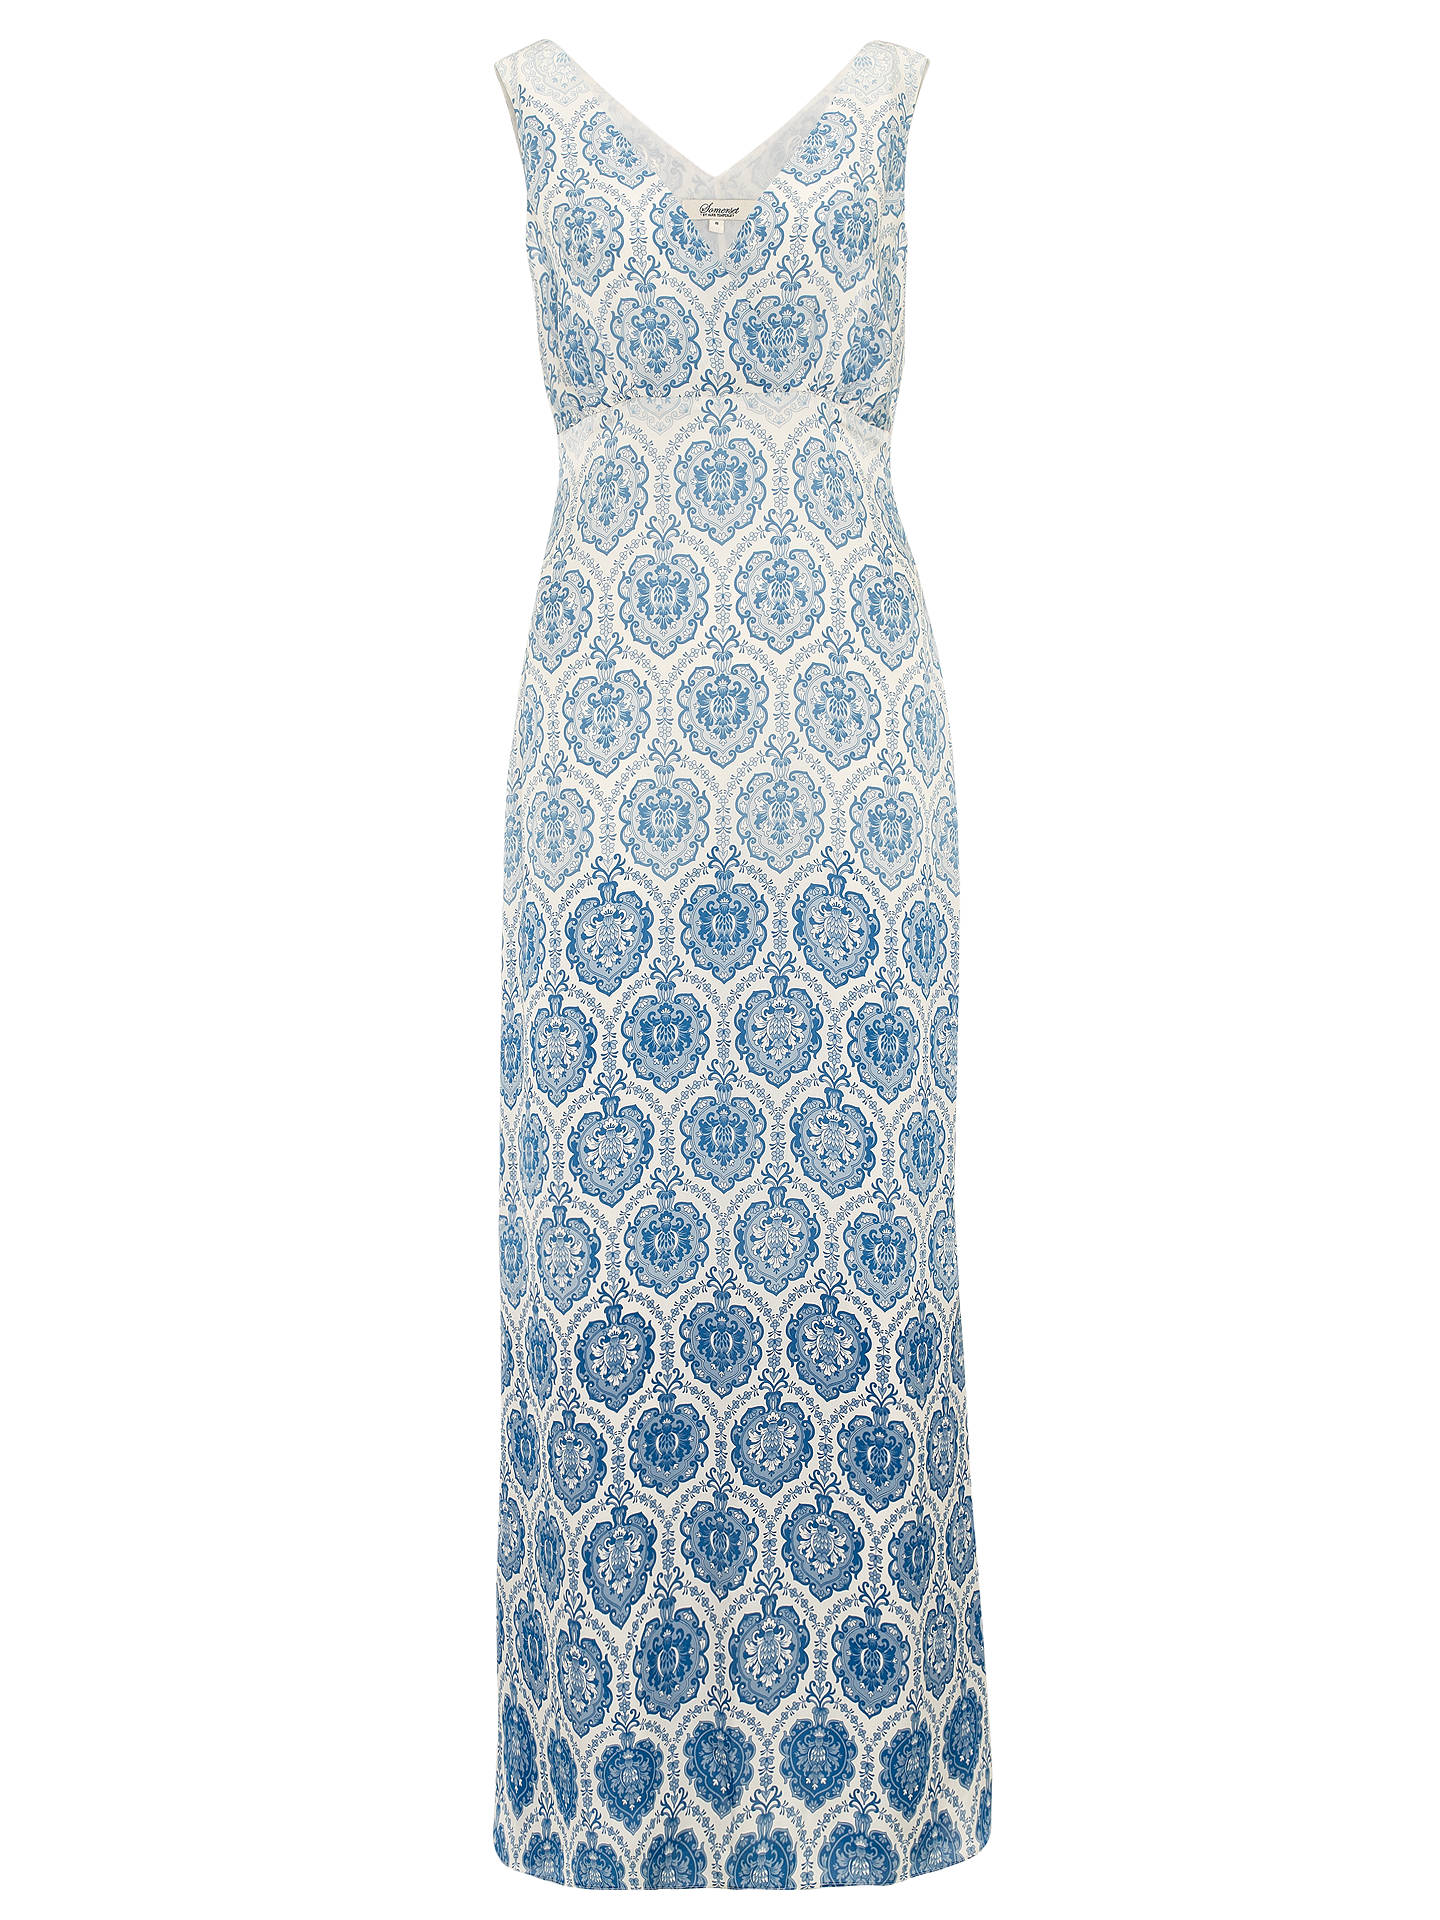 ab437d8fcc2 Buy Somerset by Alice Temperley Tile Print Silk Maxi Dress